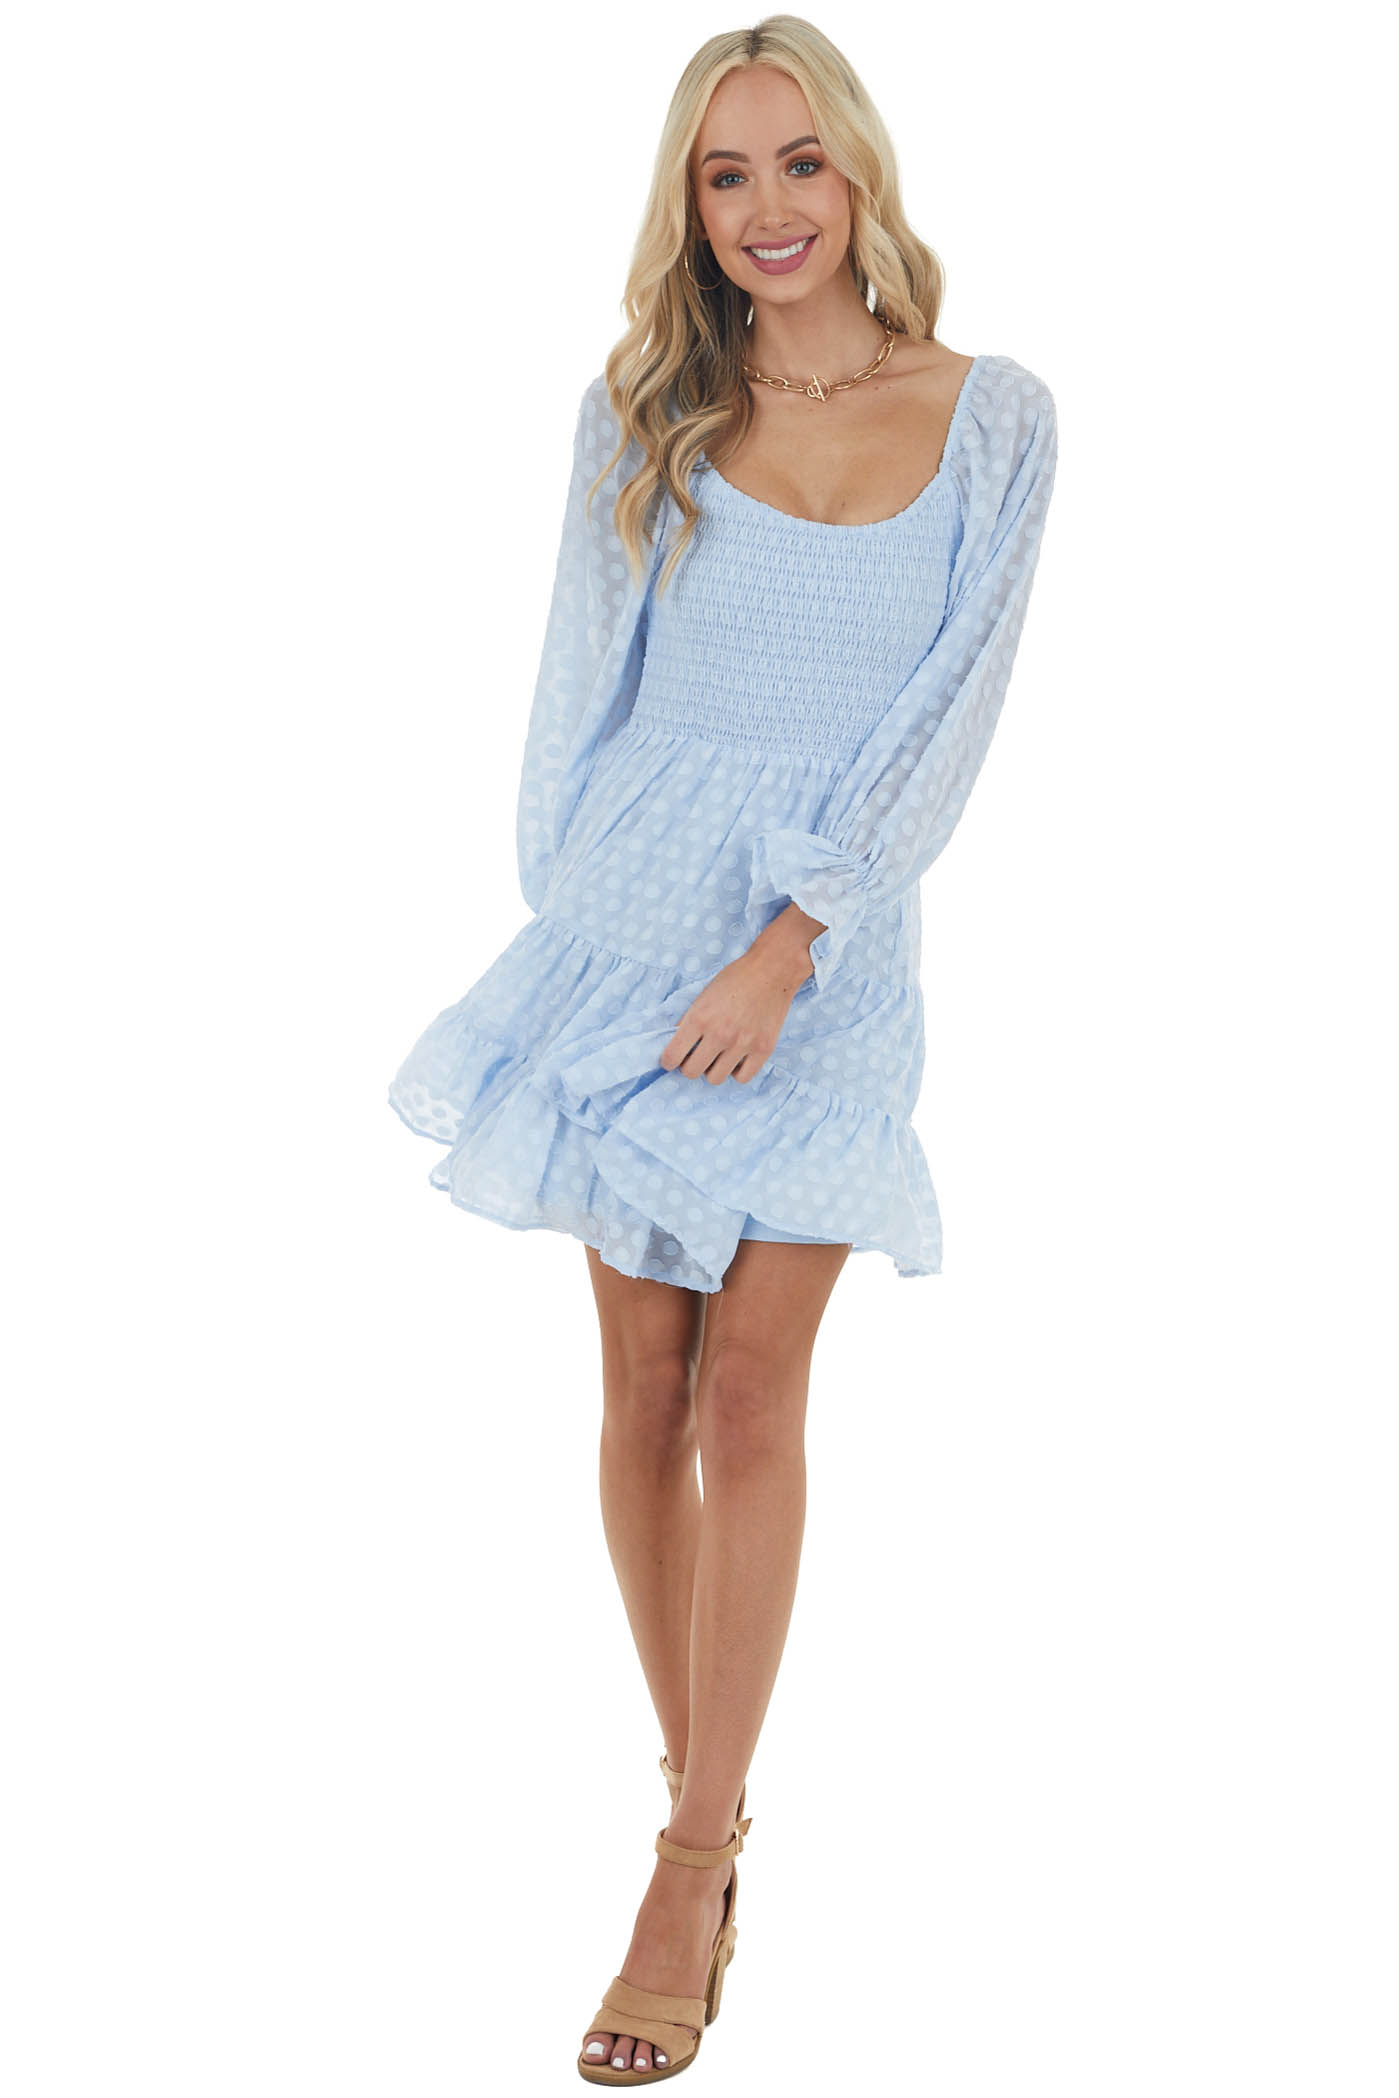 Baby Blue Swiss Dot Short Tiered Dress with Bubble Sleevesv